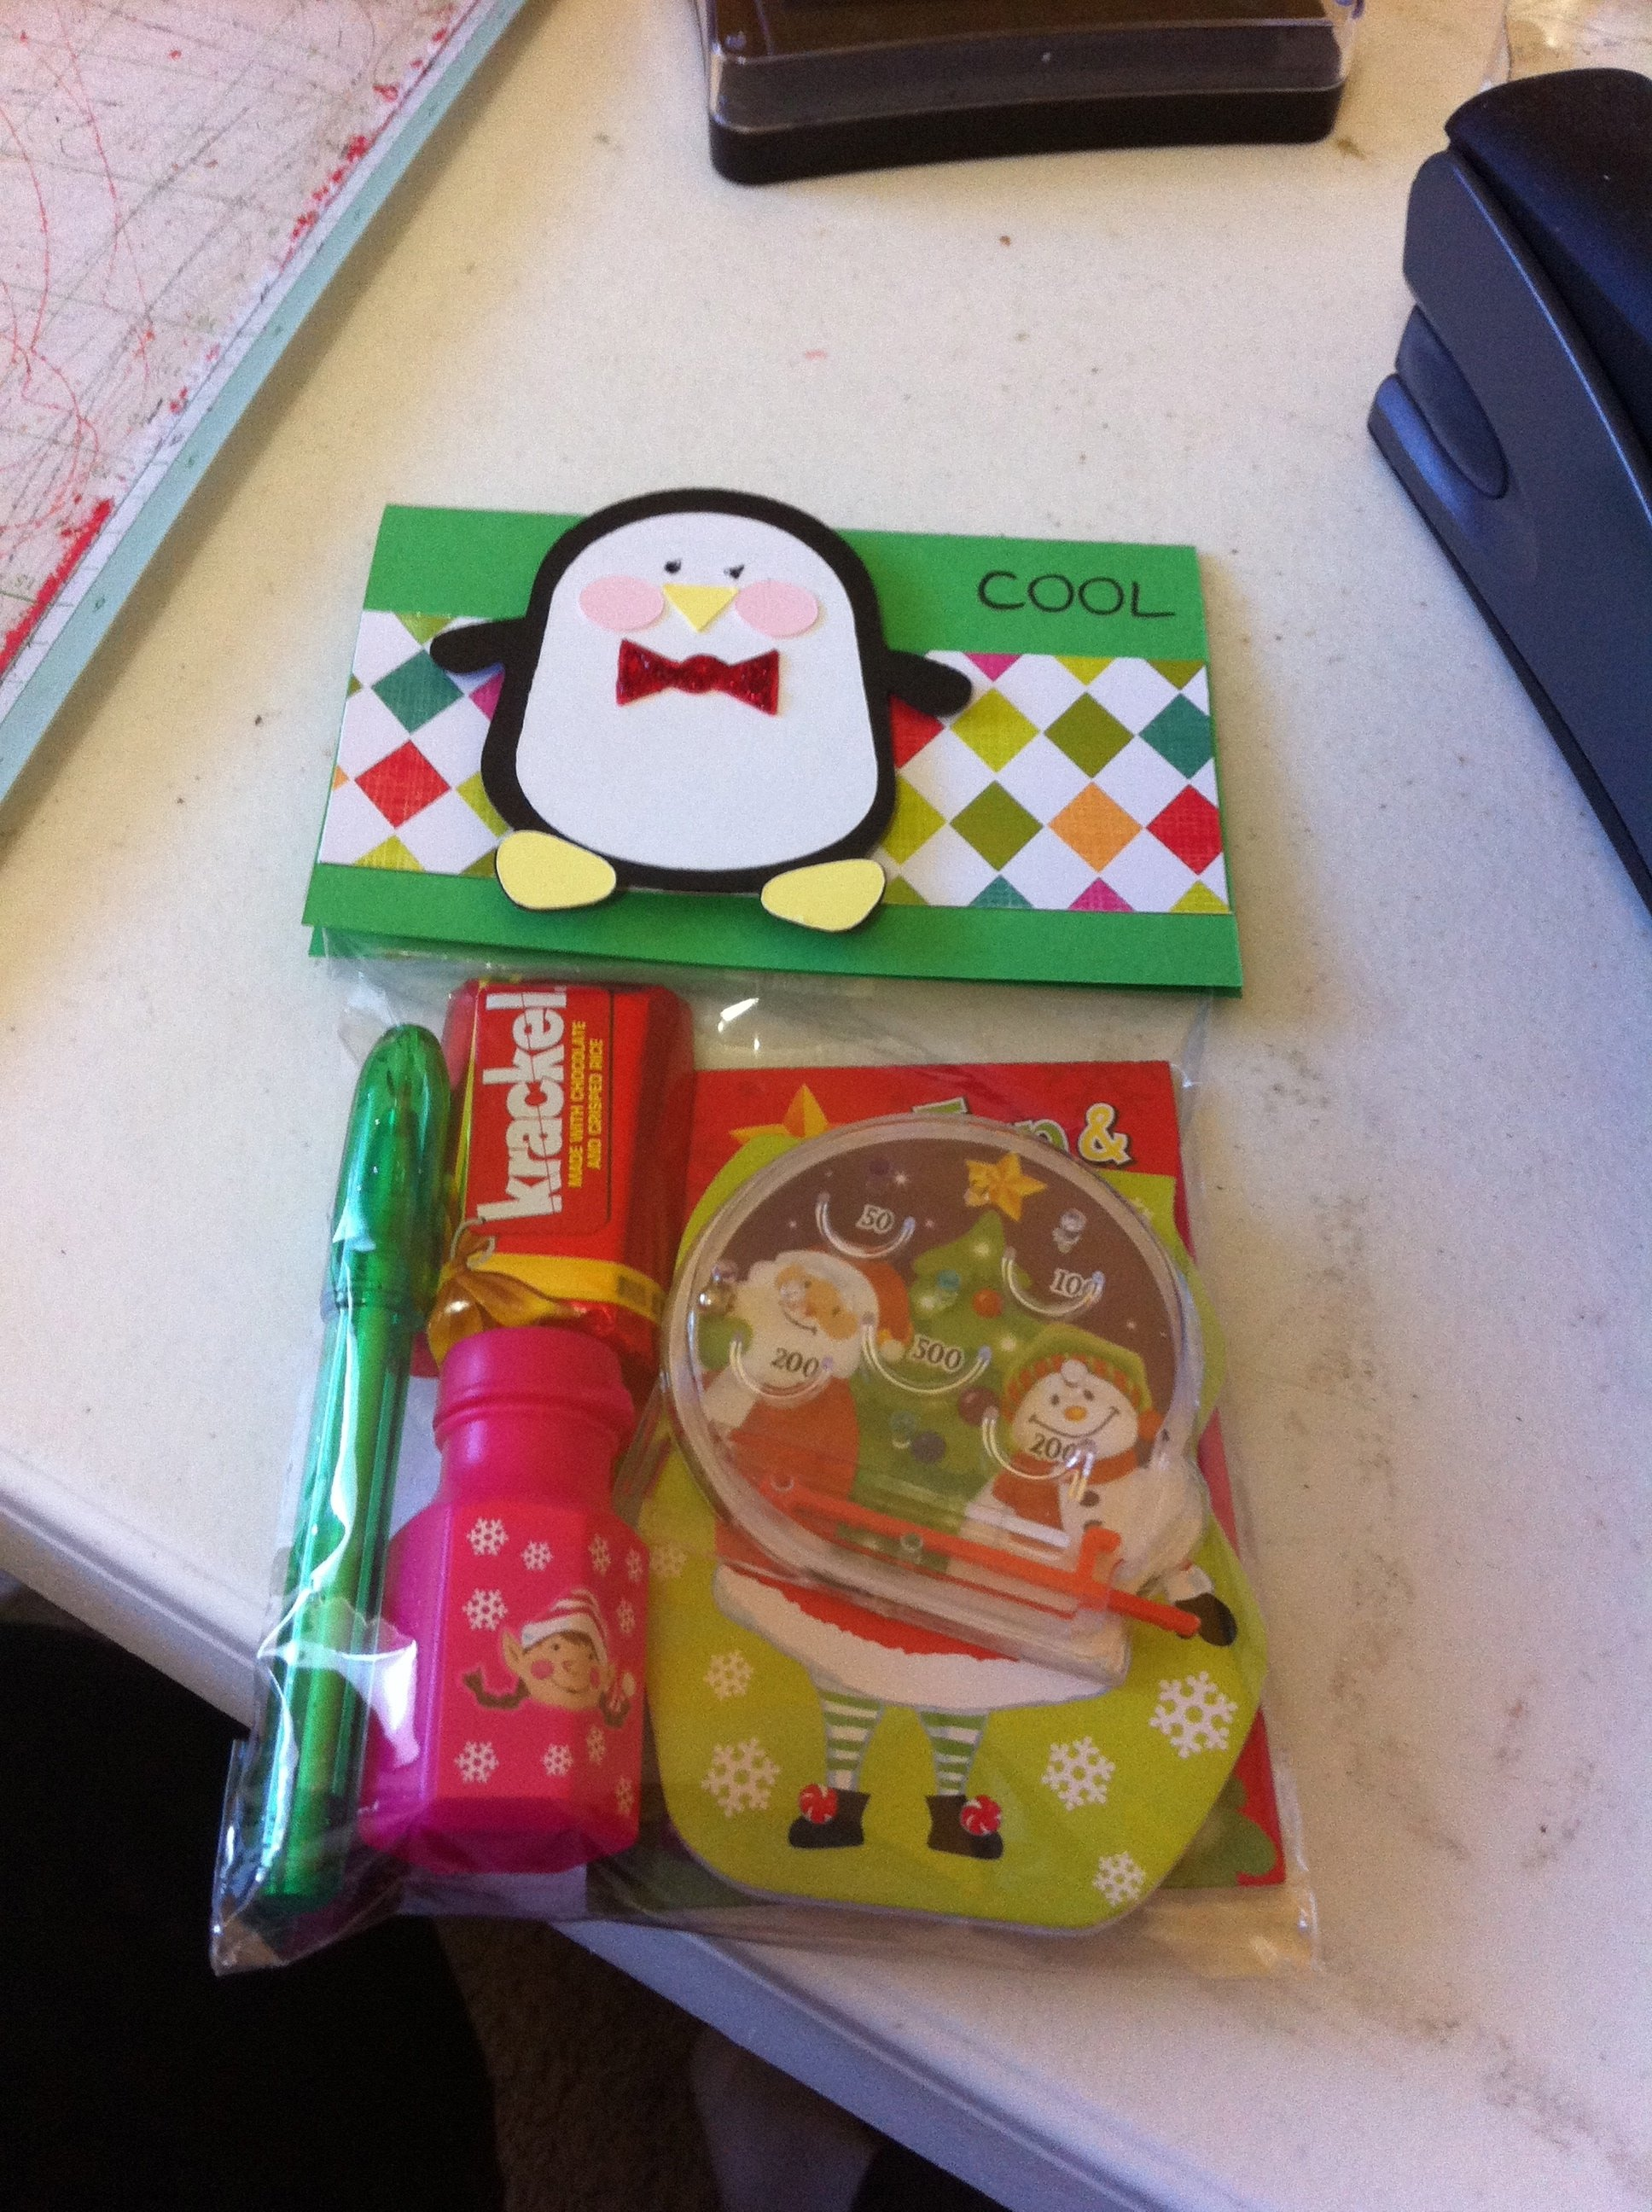 10 Nice Goodie Bag Ideas For Kids goodie bags i made for my daughters classmates for christmas 2 2020